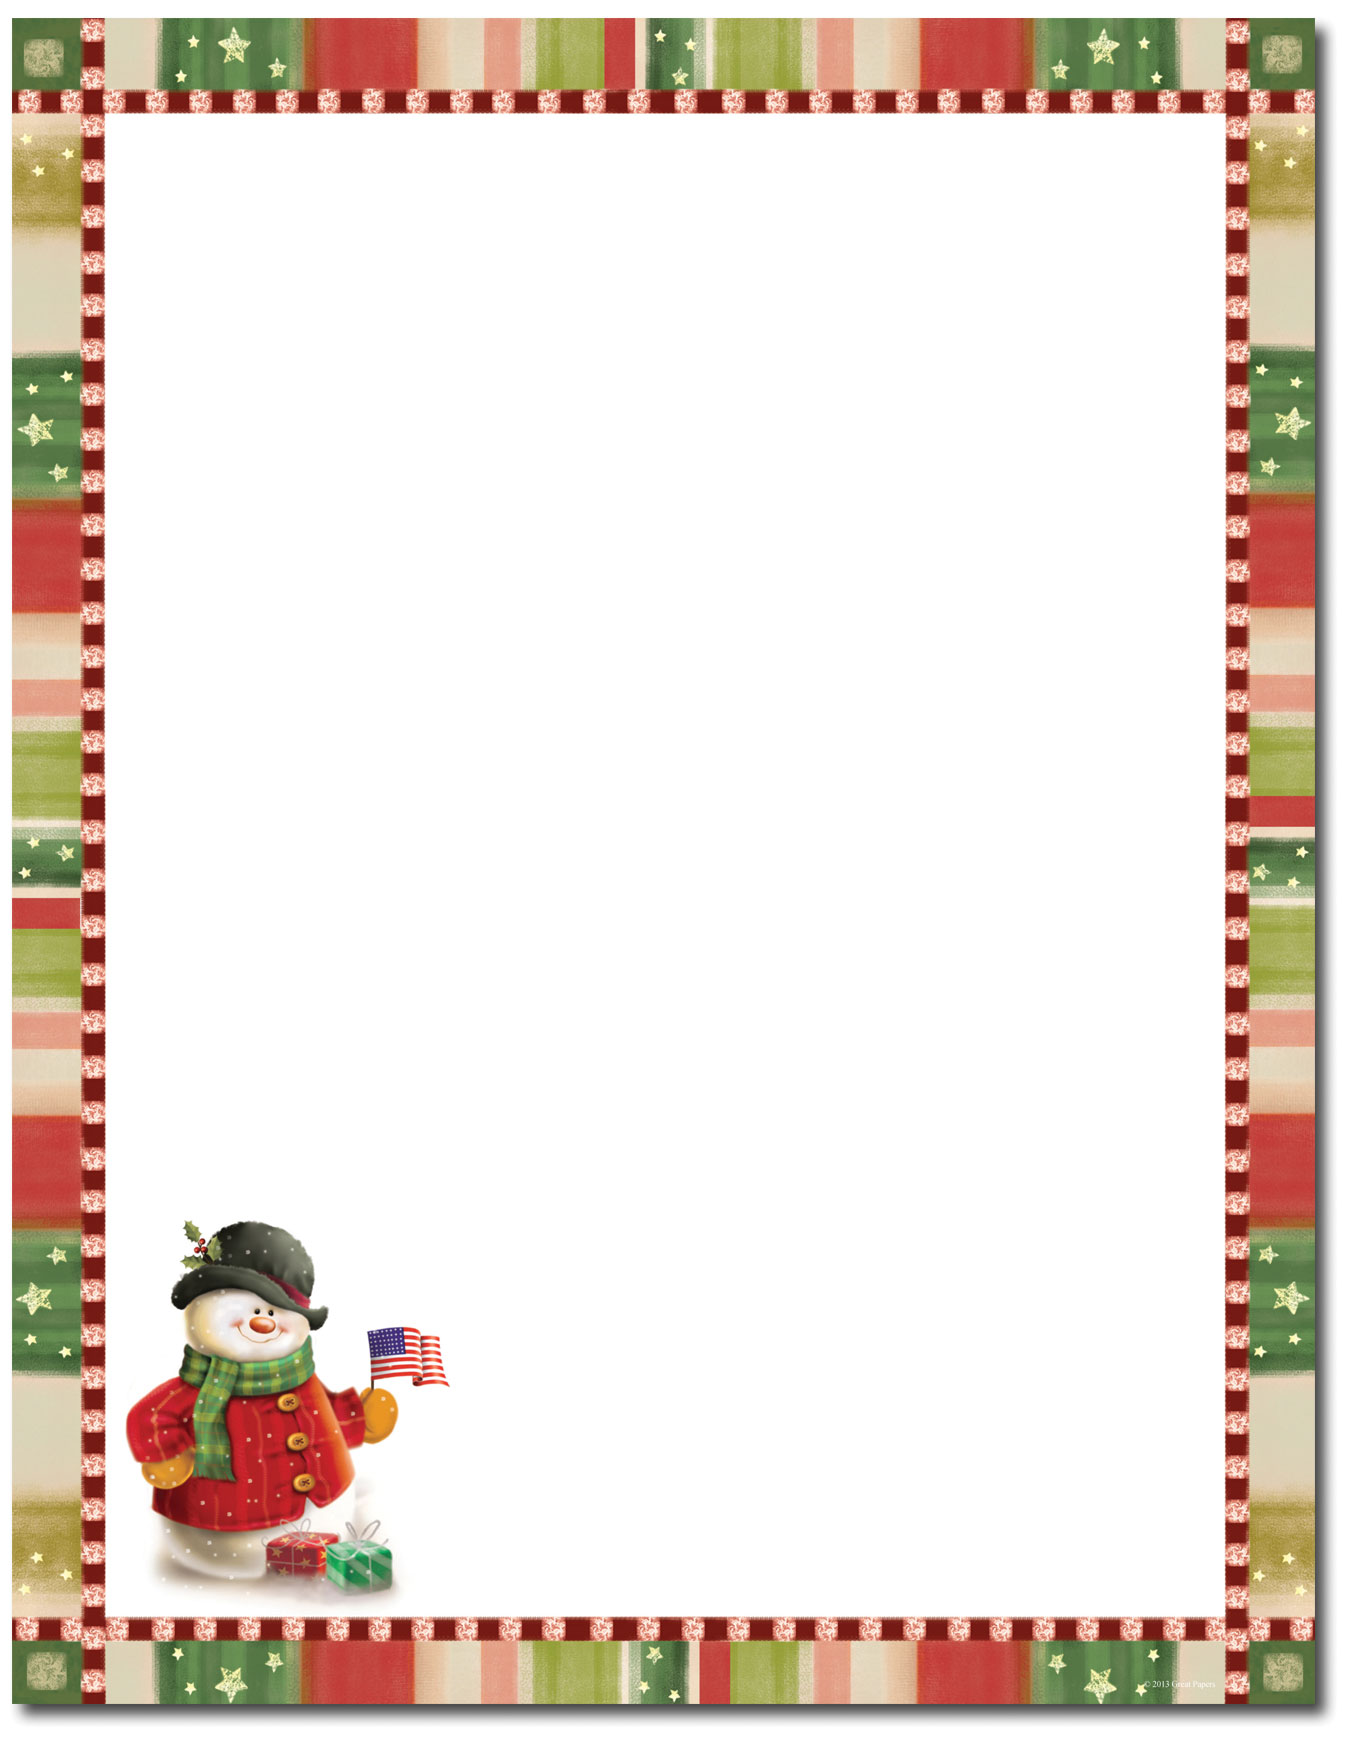 It's just a picture of Inventive Free Printable Christmas Stationery